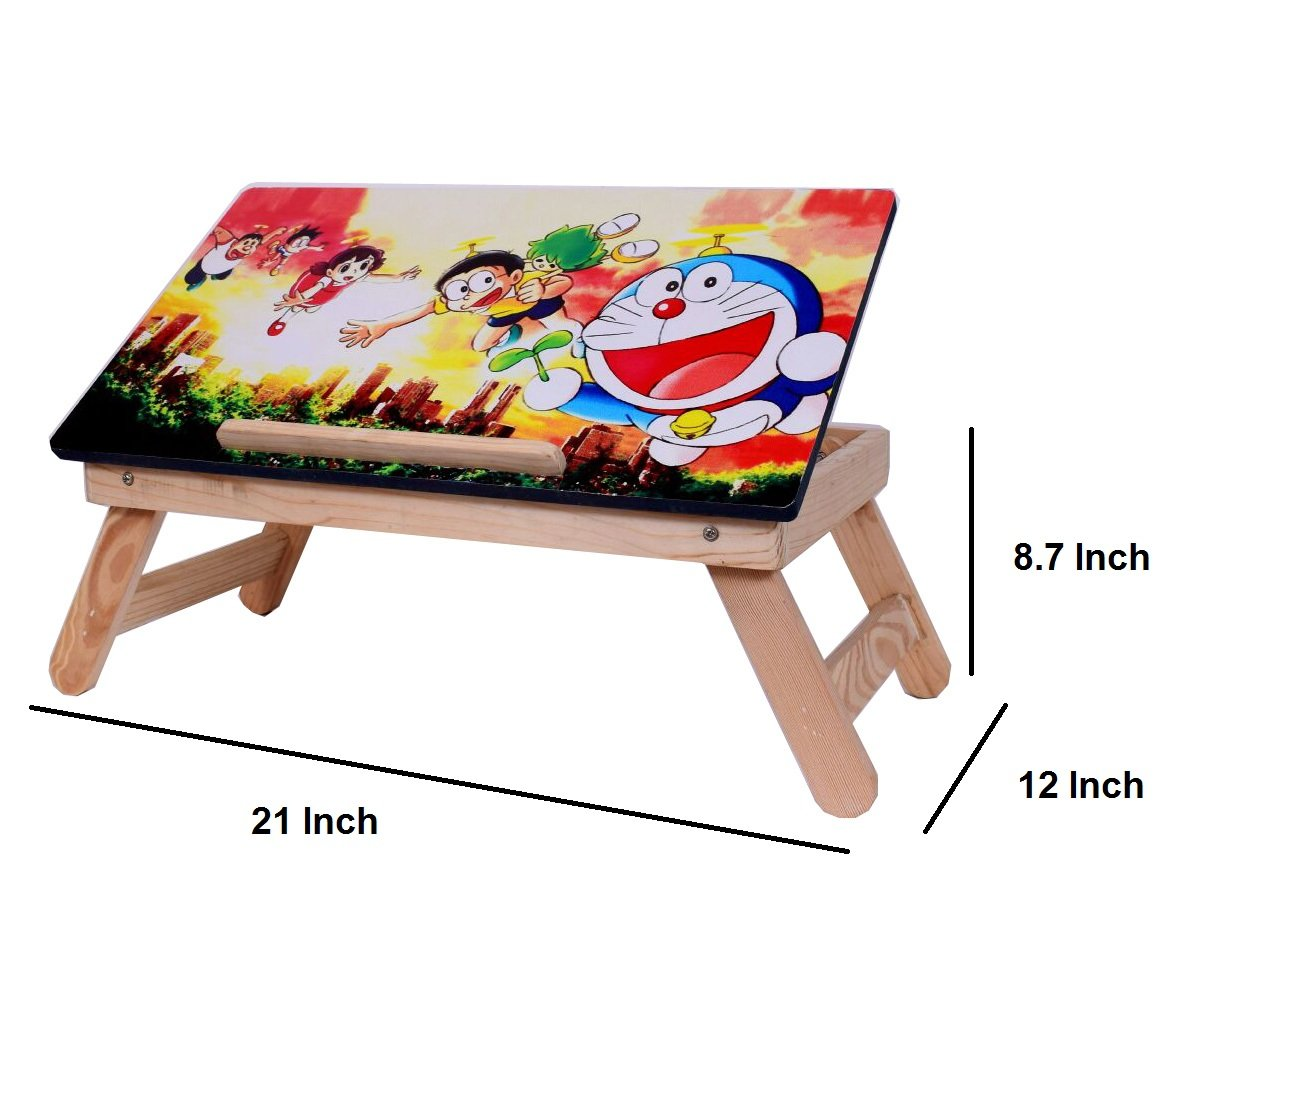 Buy Cadeau Printed Wooden Table/Kids Table/Laptop Table/Laptop Bed